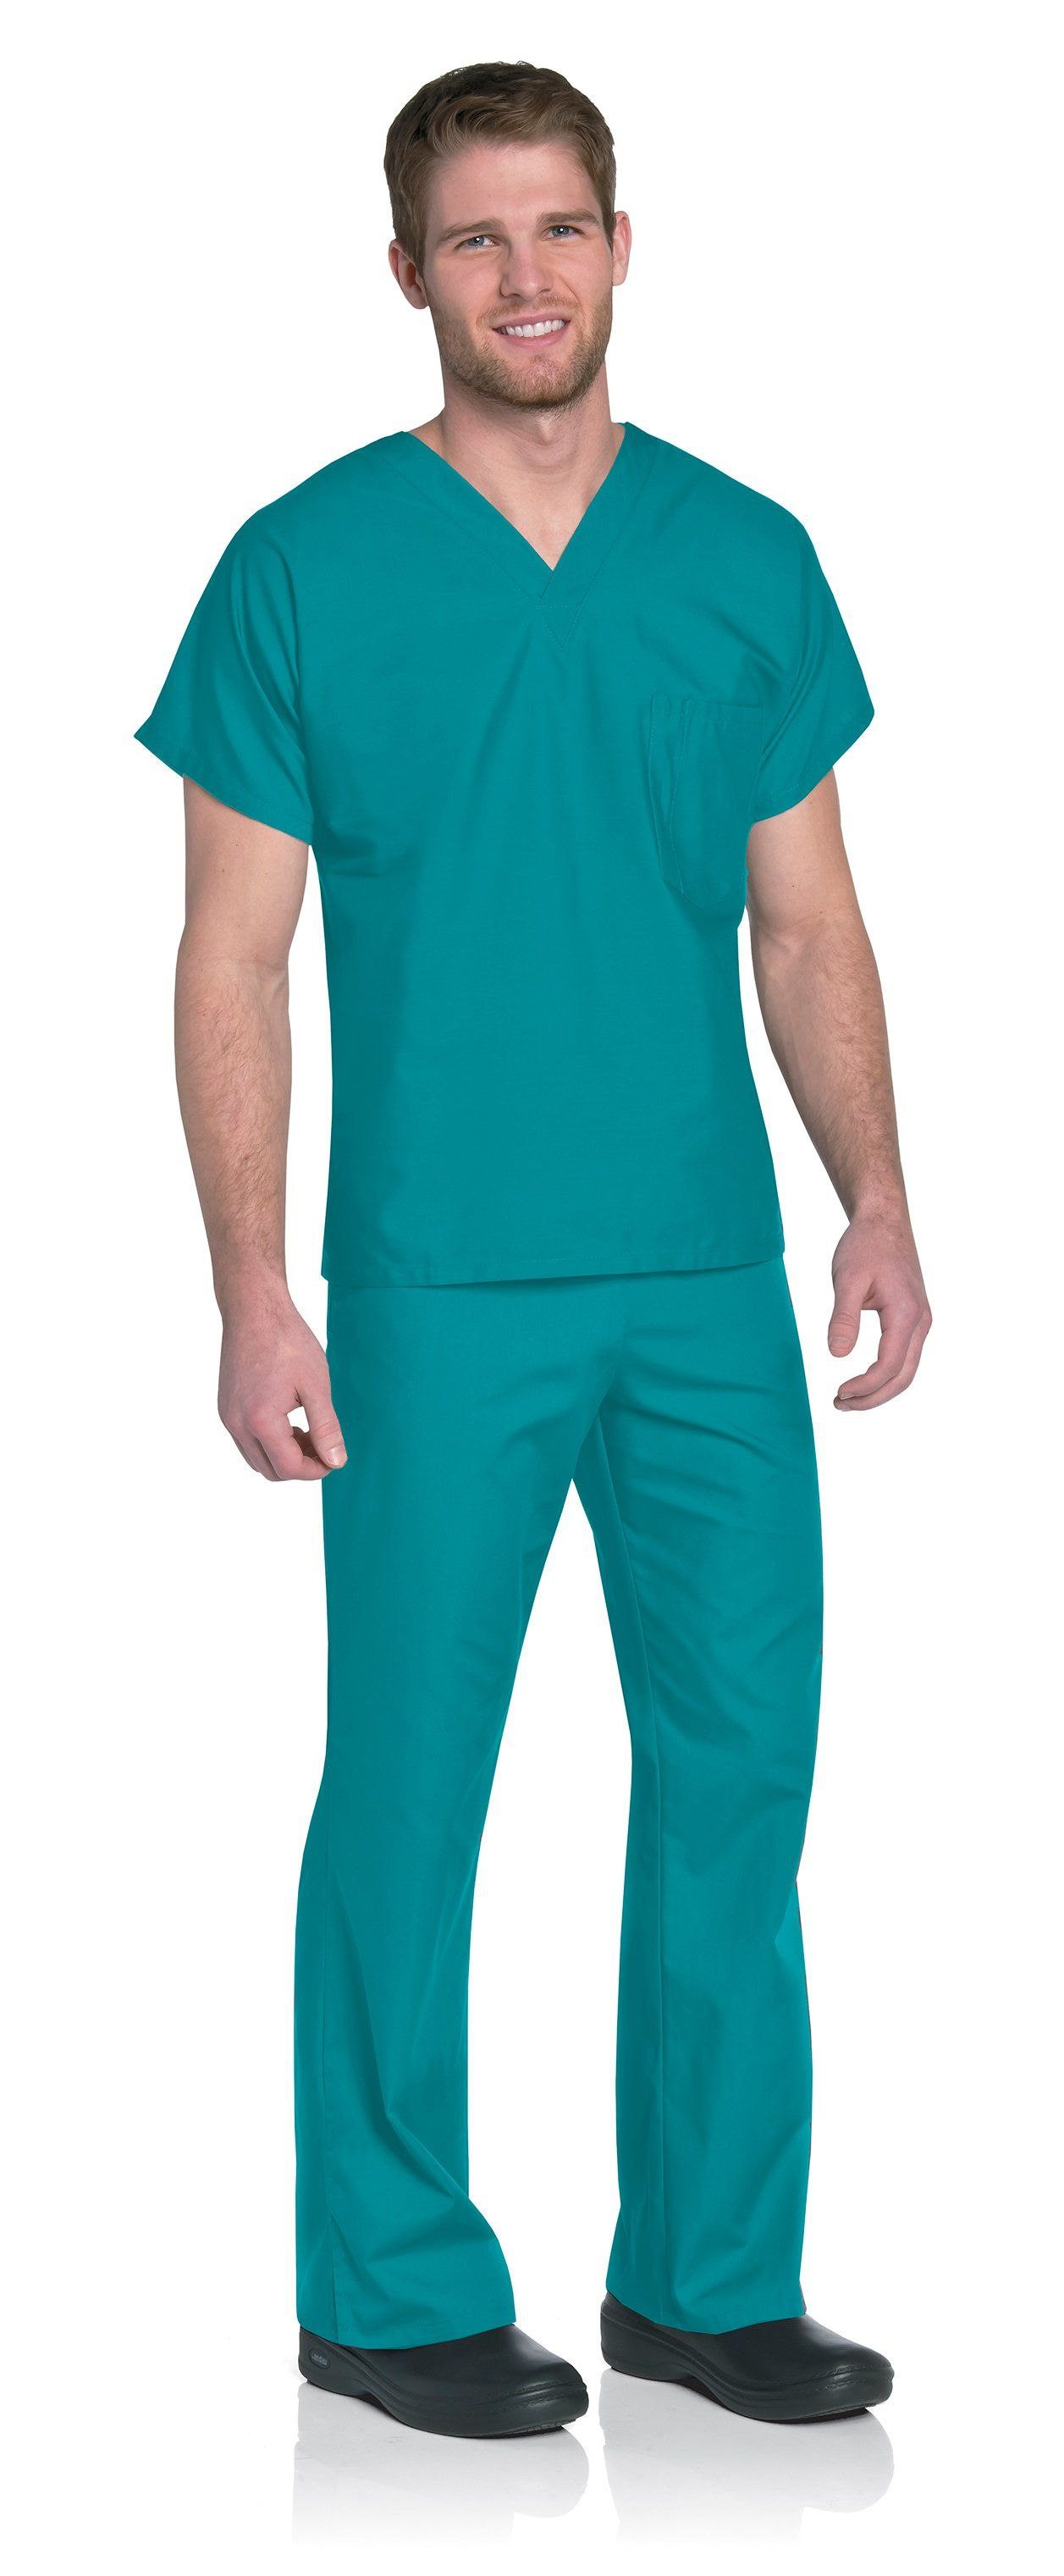 For Healthcare Bed Sheets Staff Apparel Scrub Uniforms And More